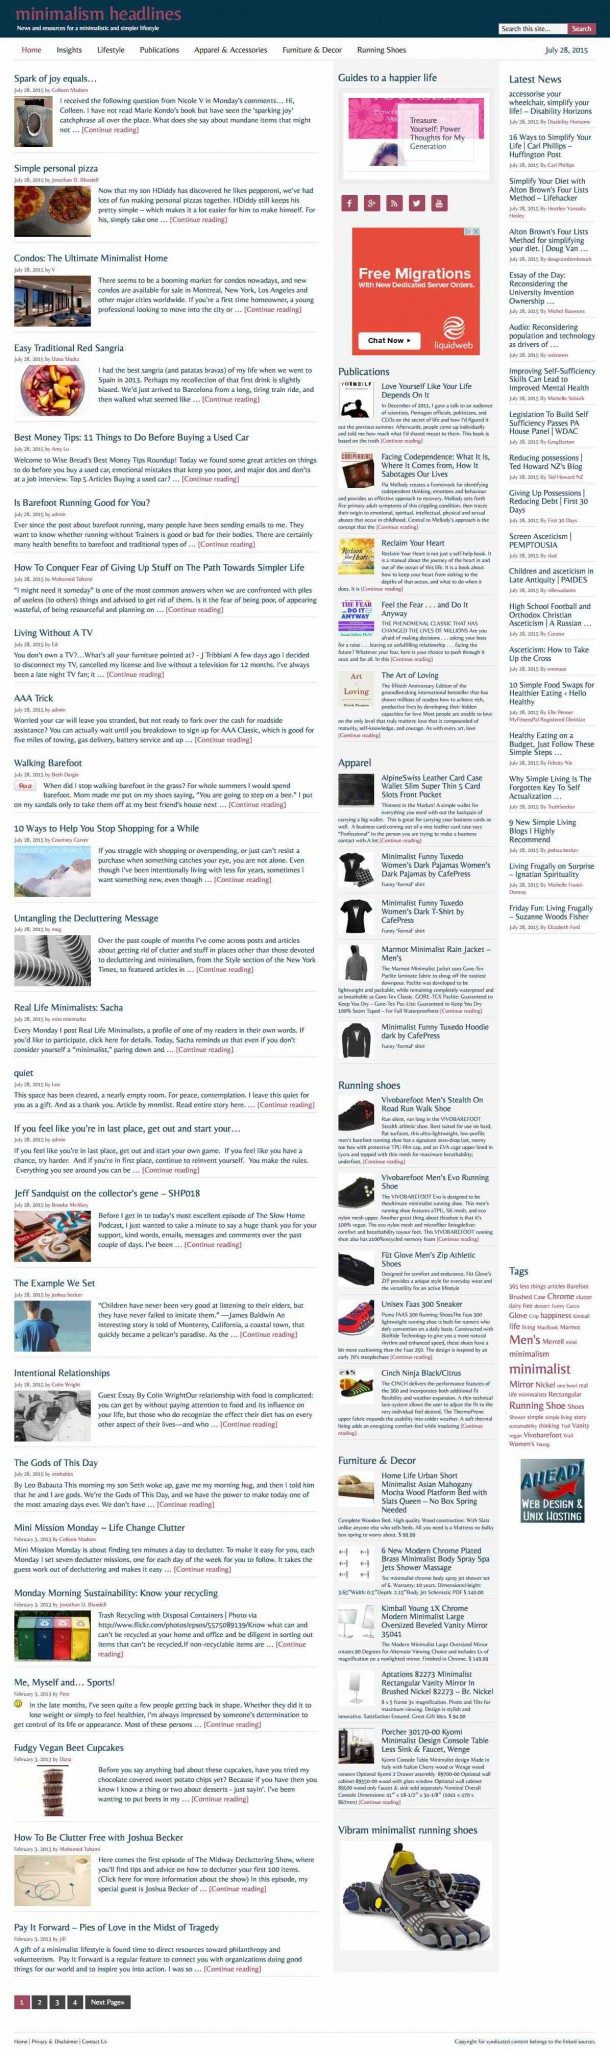 minimalism_headlines_News_and_resources_for_a_minimalistic_and_simpler_lifestyle